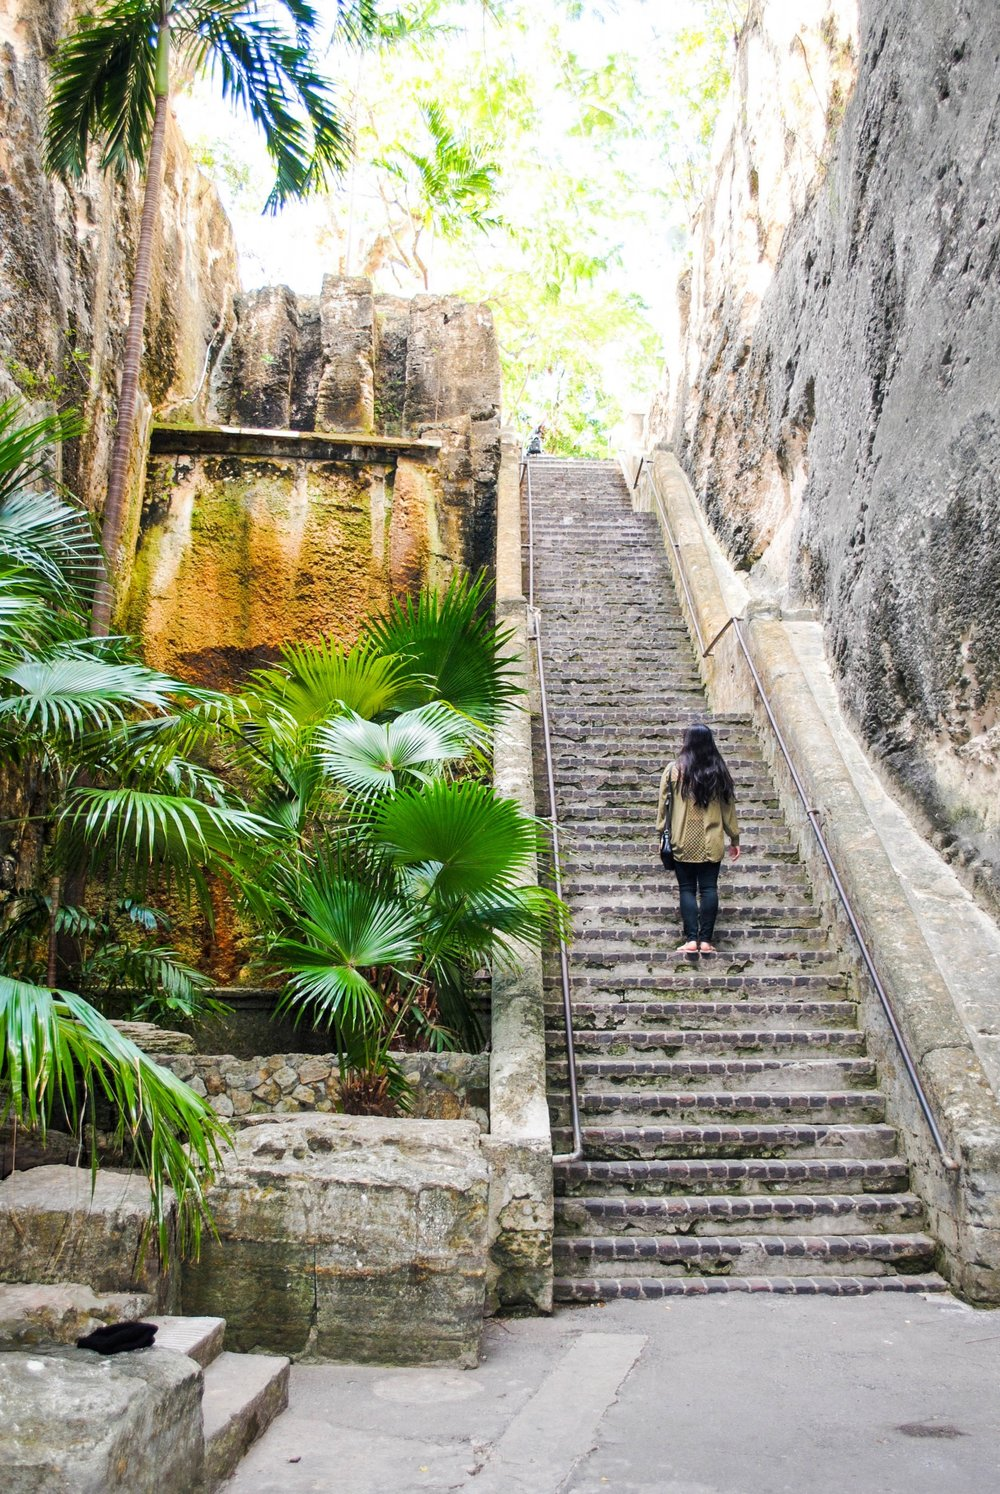 The Queen's Staircase in Nassau, Bahamas